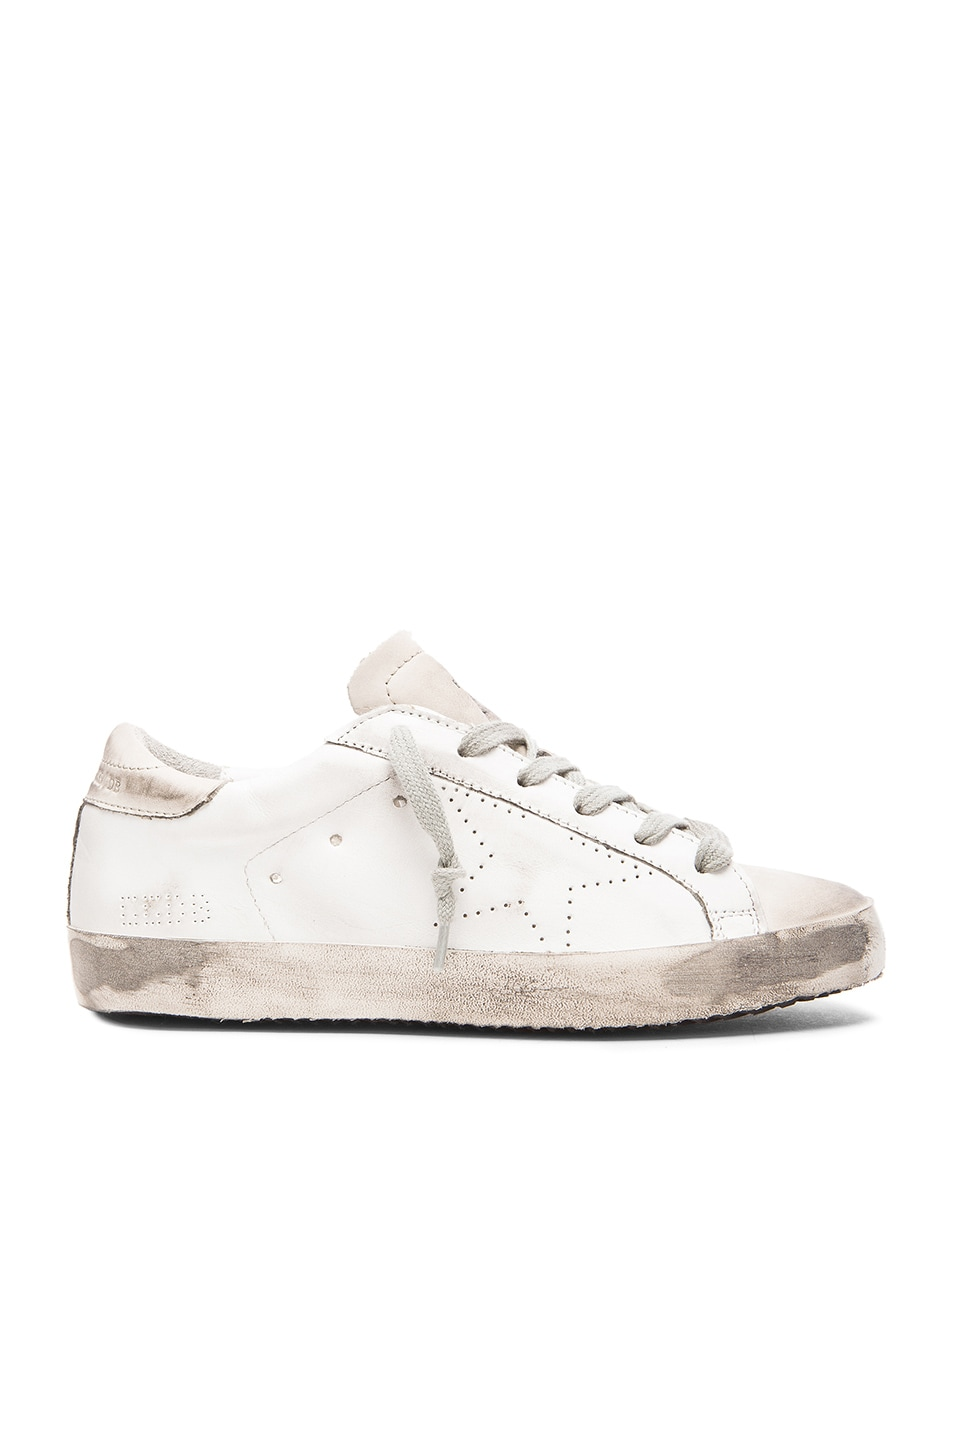 Image 1 of Golden Goose Superstar Low Top Leather Sneakers in White